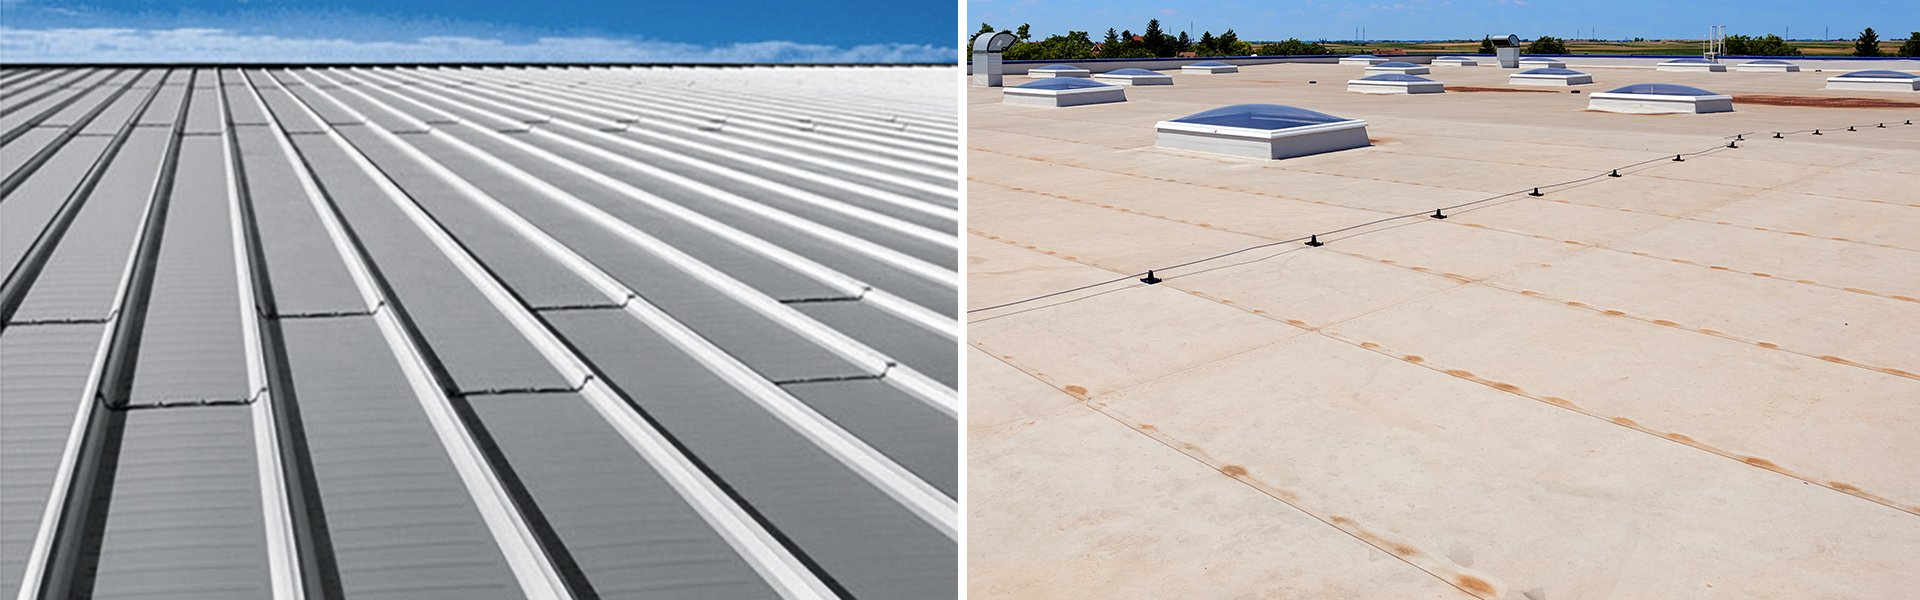 Re-Roofing: Commercial Metal Roof vs Commercial Flat Roof